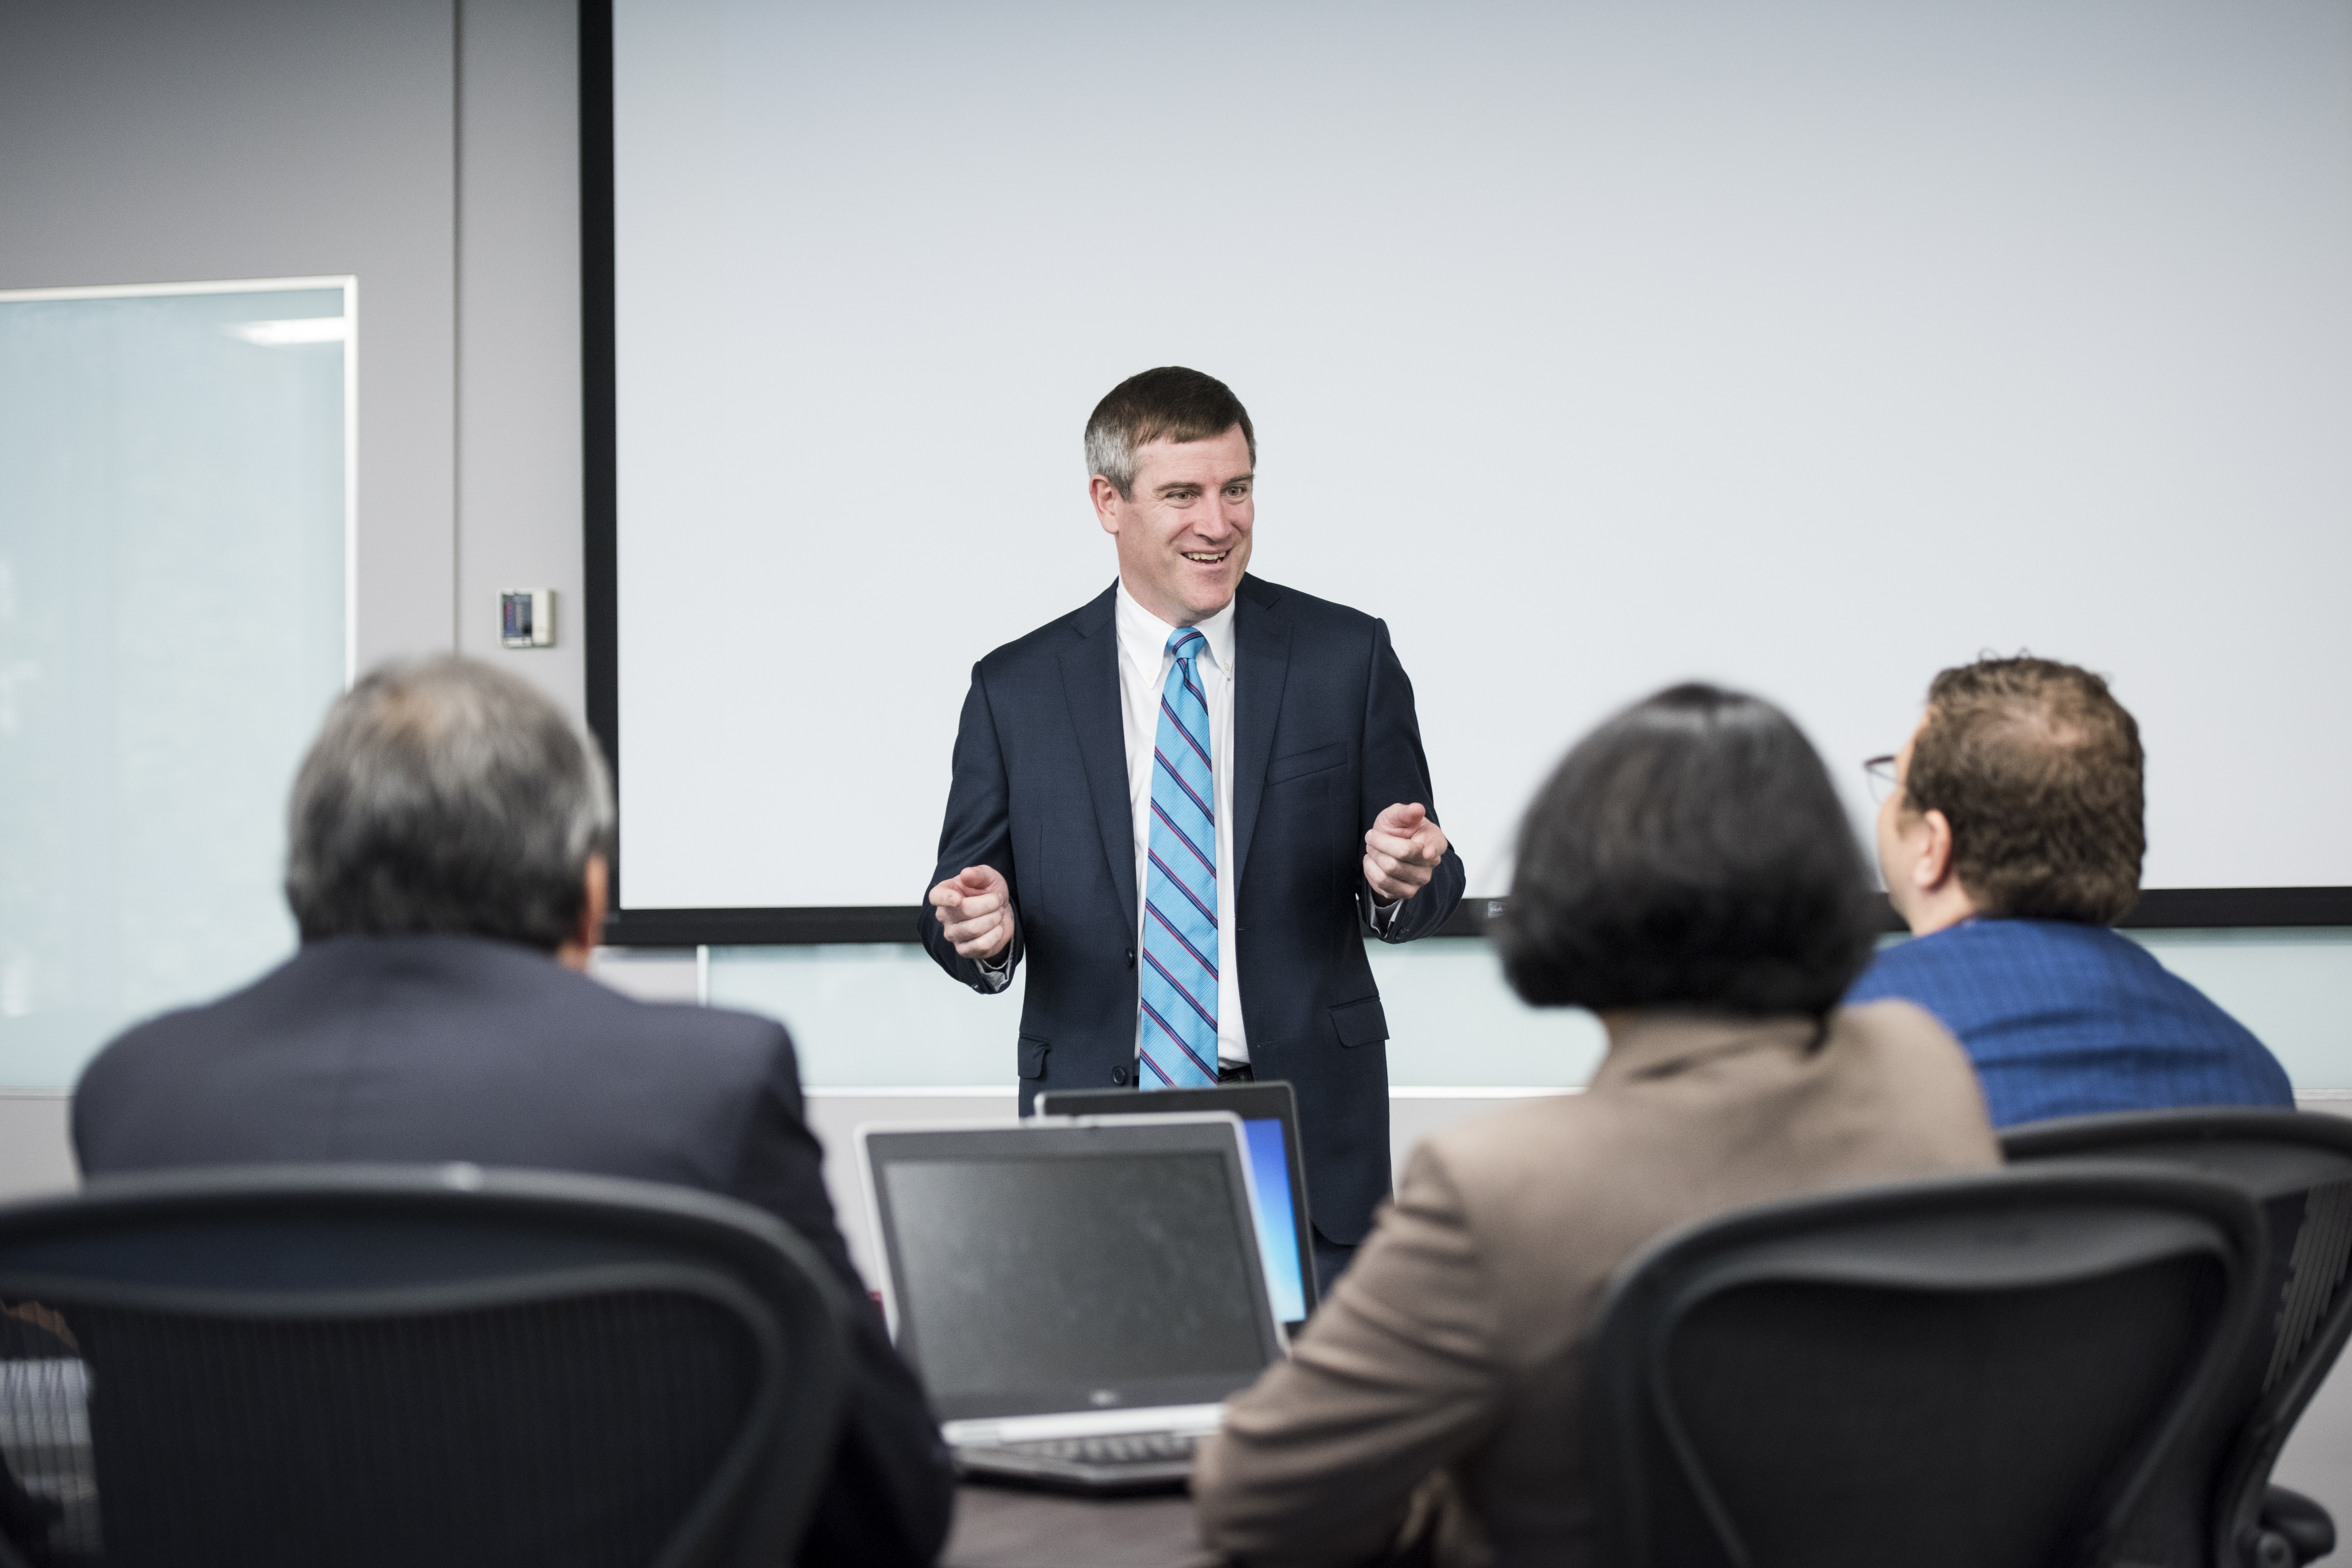 Professor Michael Mulvey leading a discussion in the Executive MBA classroom